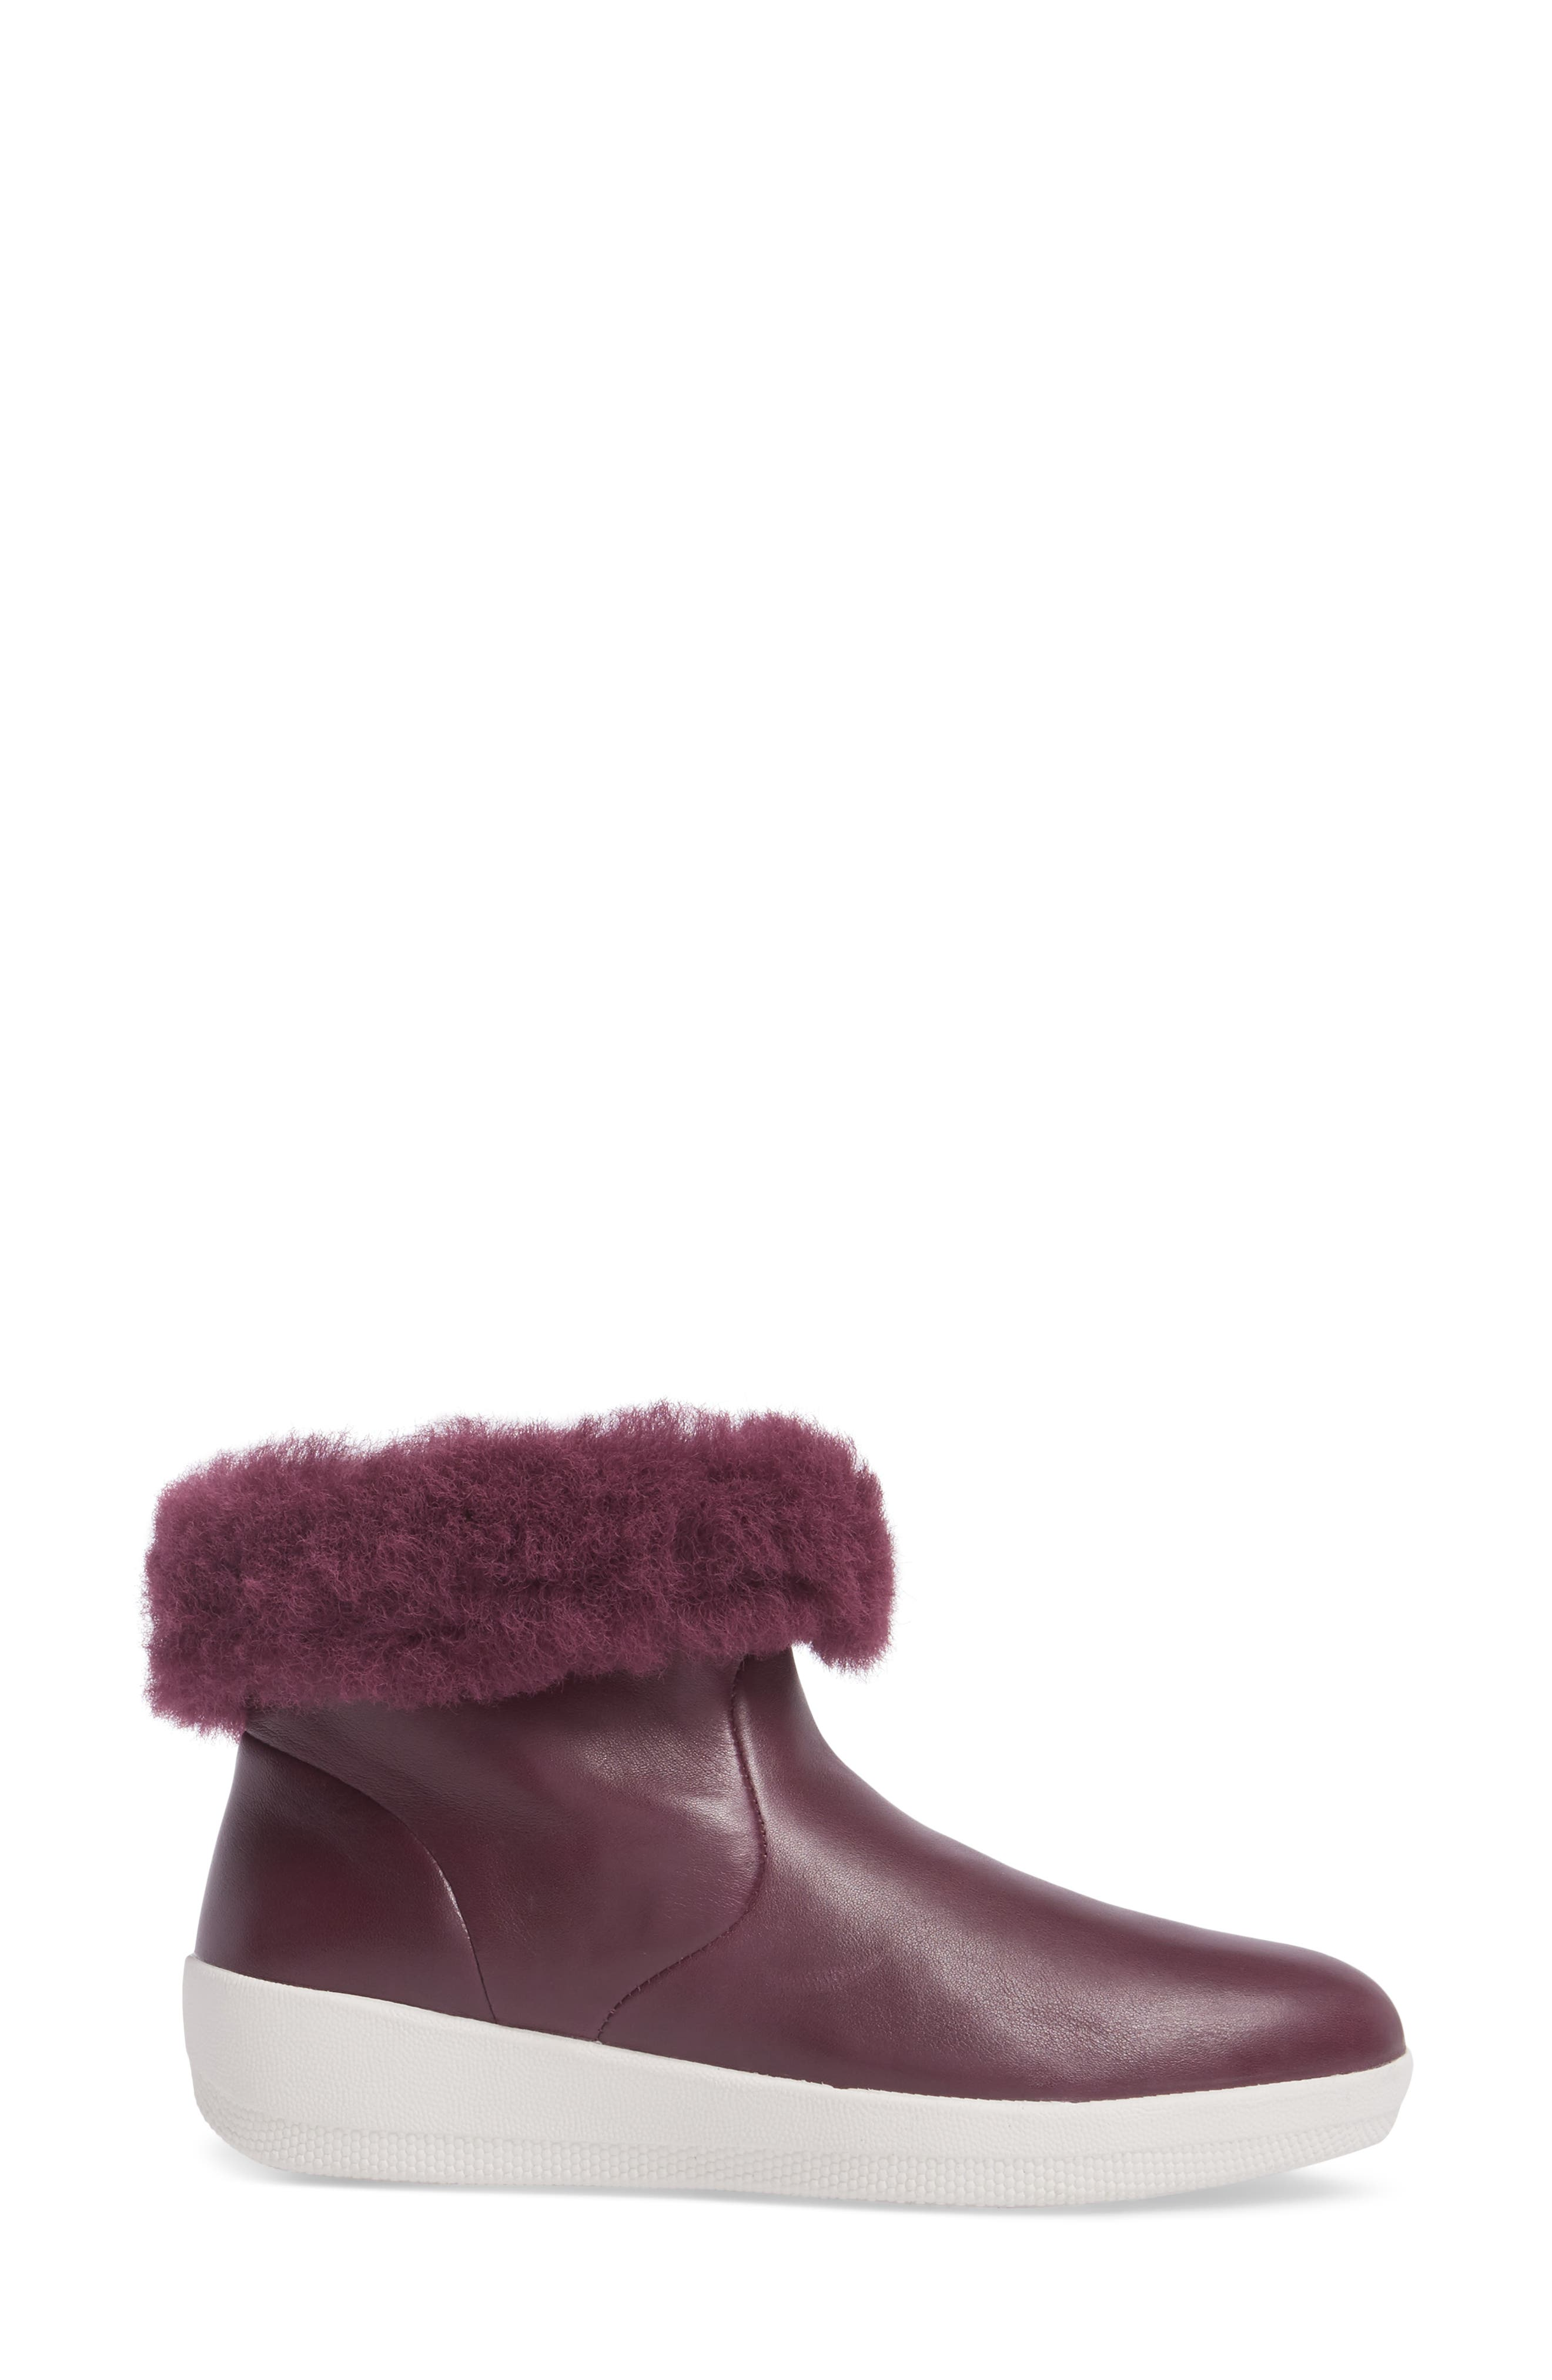 Skatebootie<sup>™</sup> with Genuine Shearling Cuff,                             Alternate thumbnail 3, color,                             Deep Plum